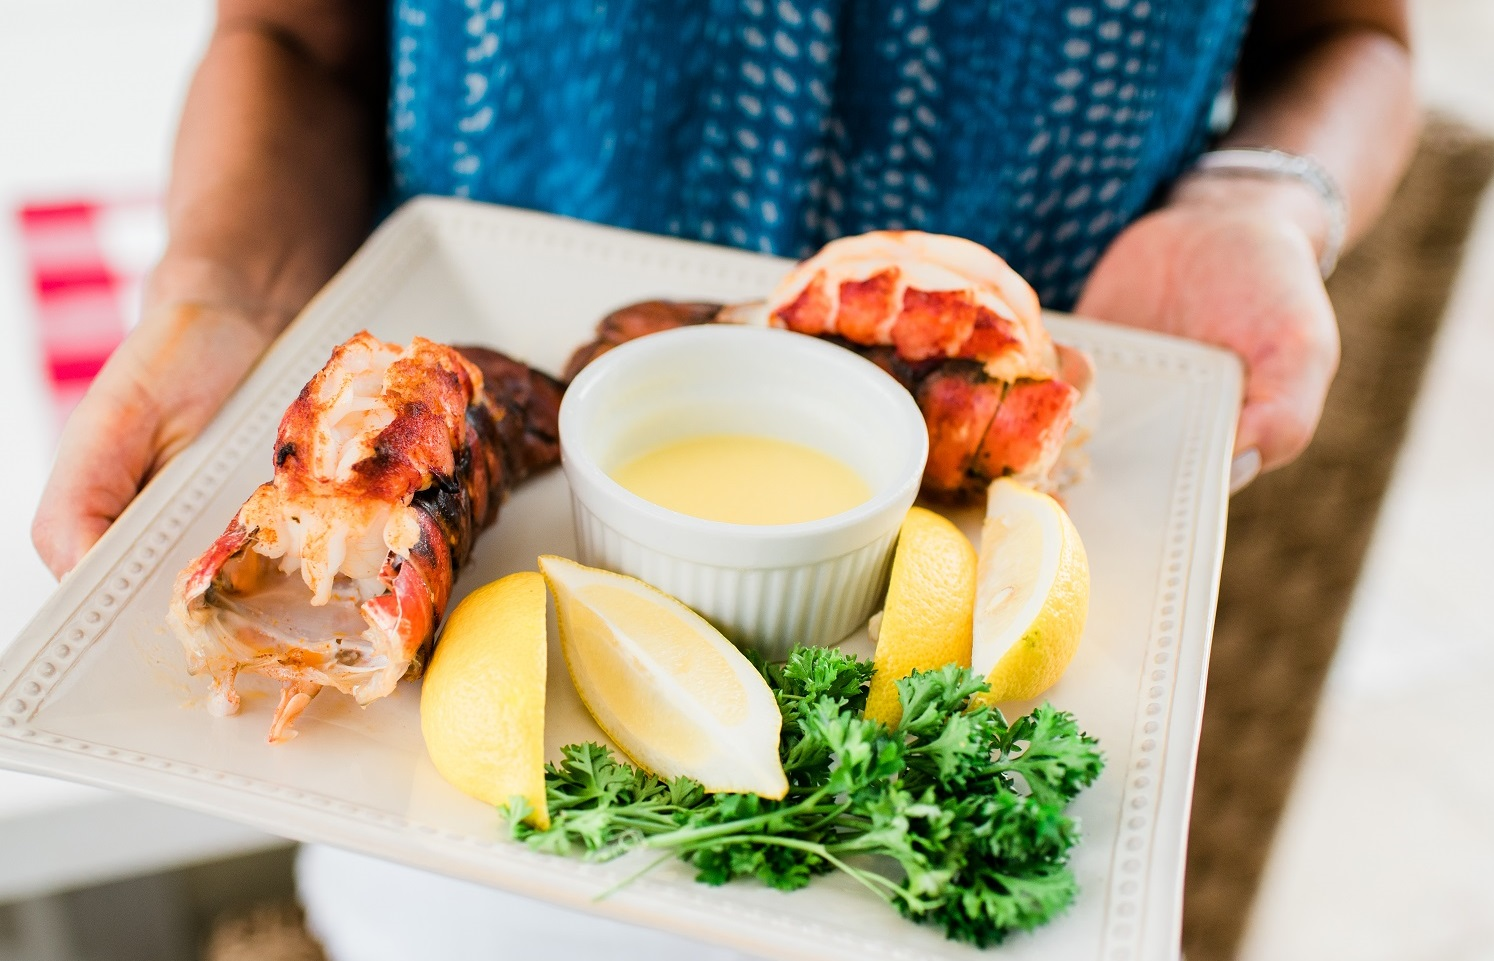 Deconstructed New England Lobster Bake - Enjoy a refined take on this traditional feast